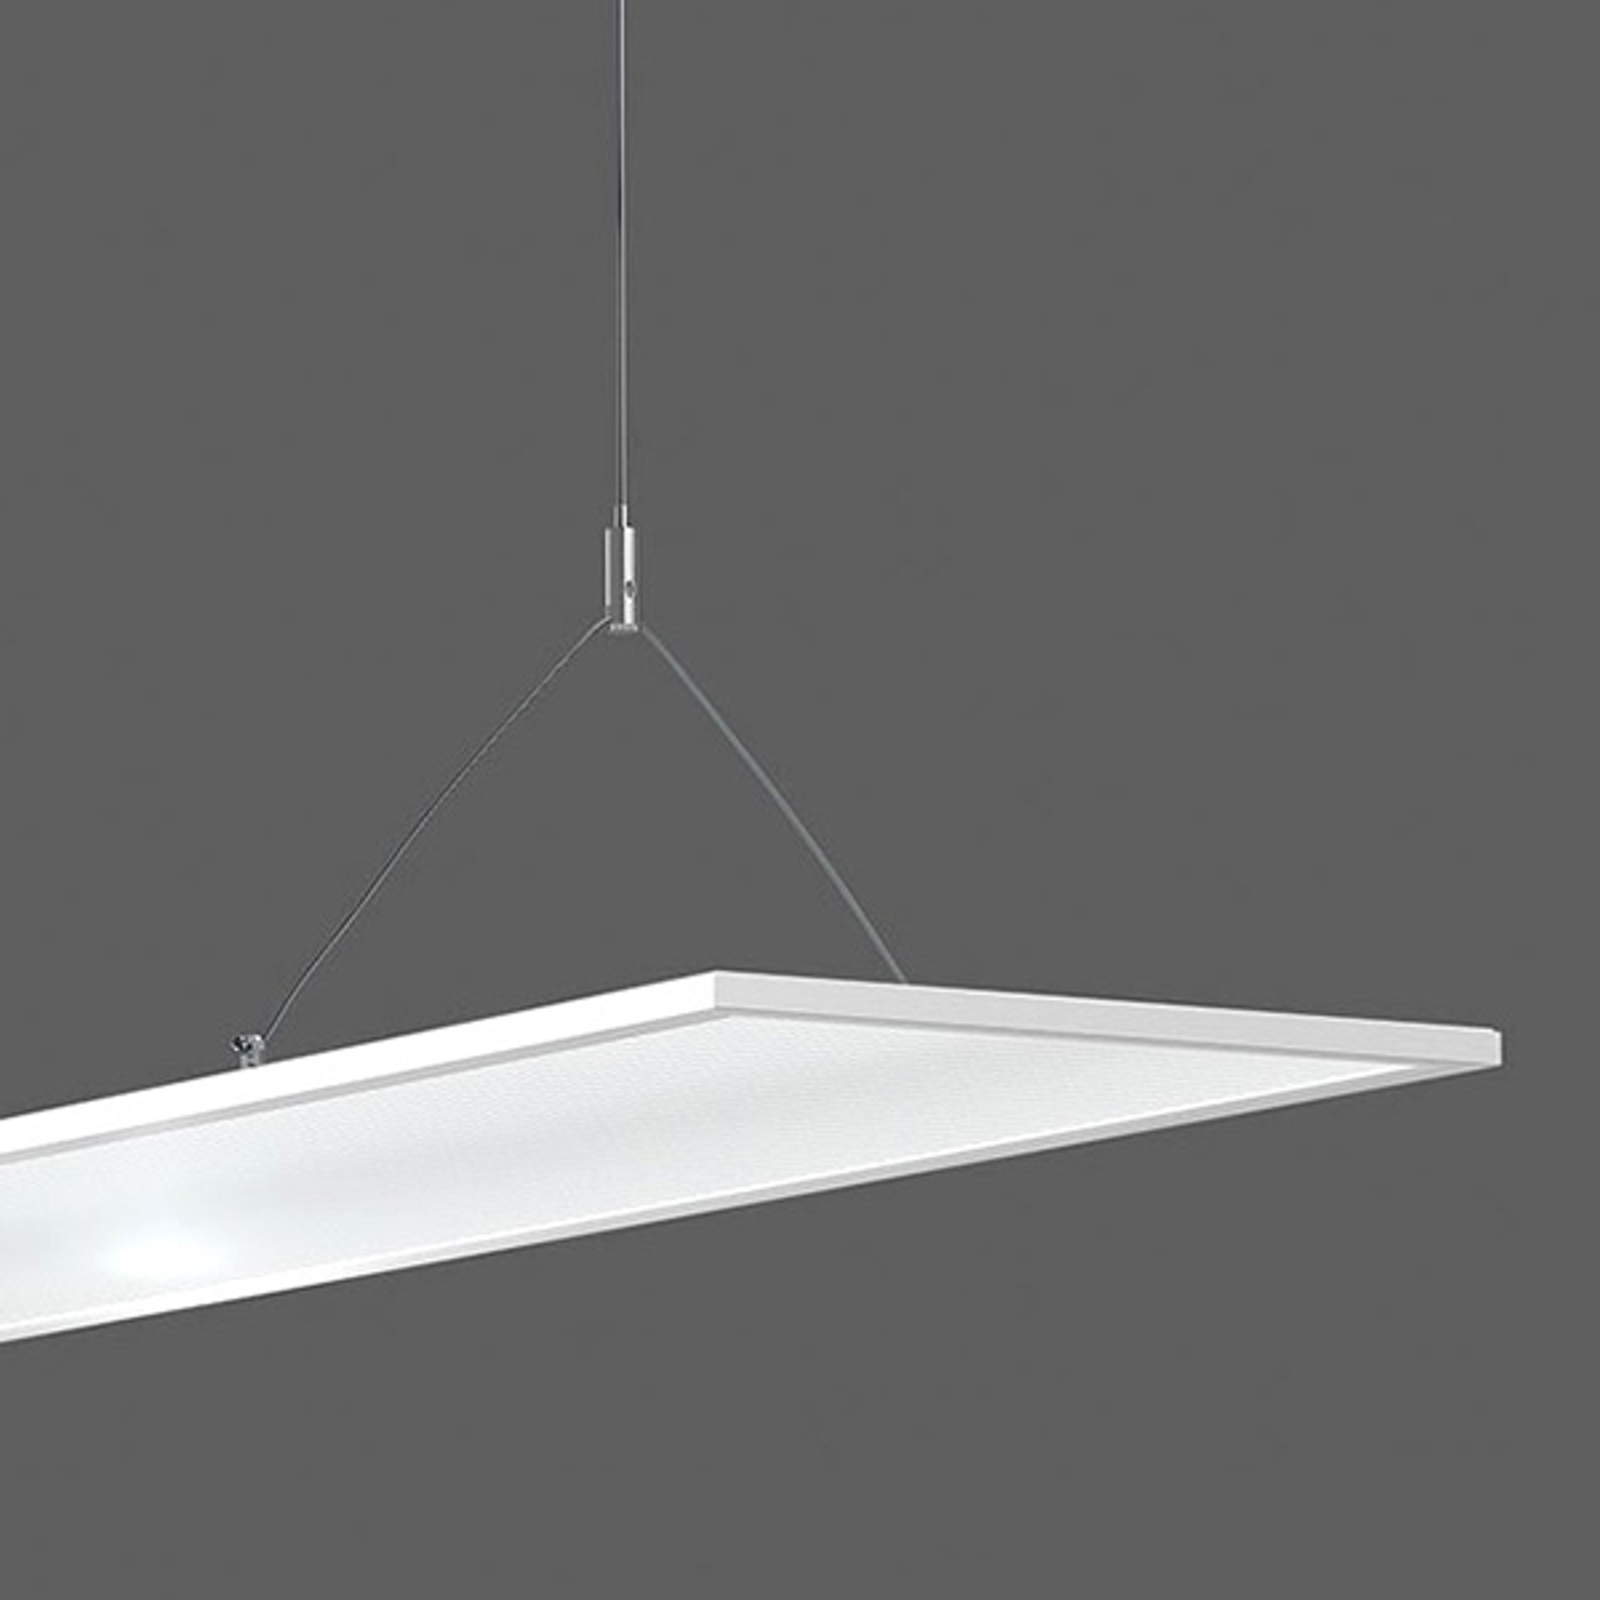 Y-tauopphengssystem for LED-panel